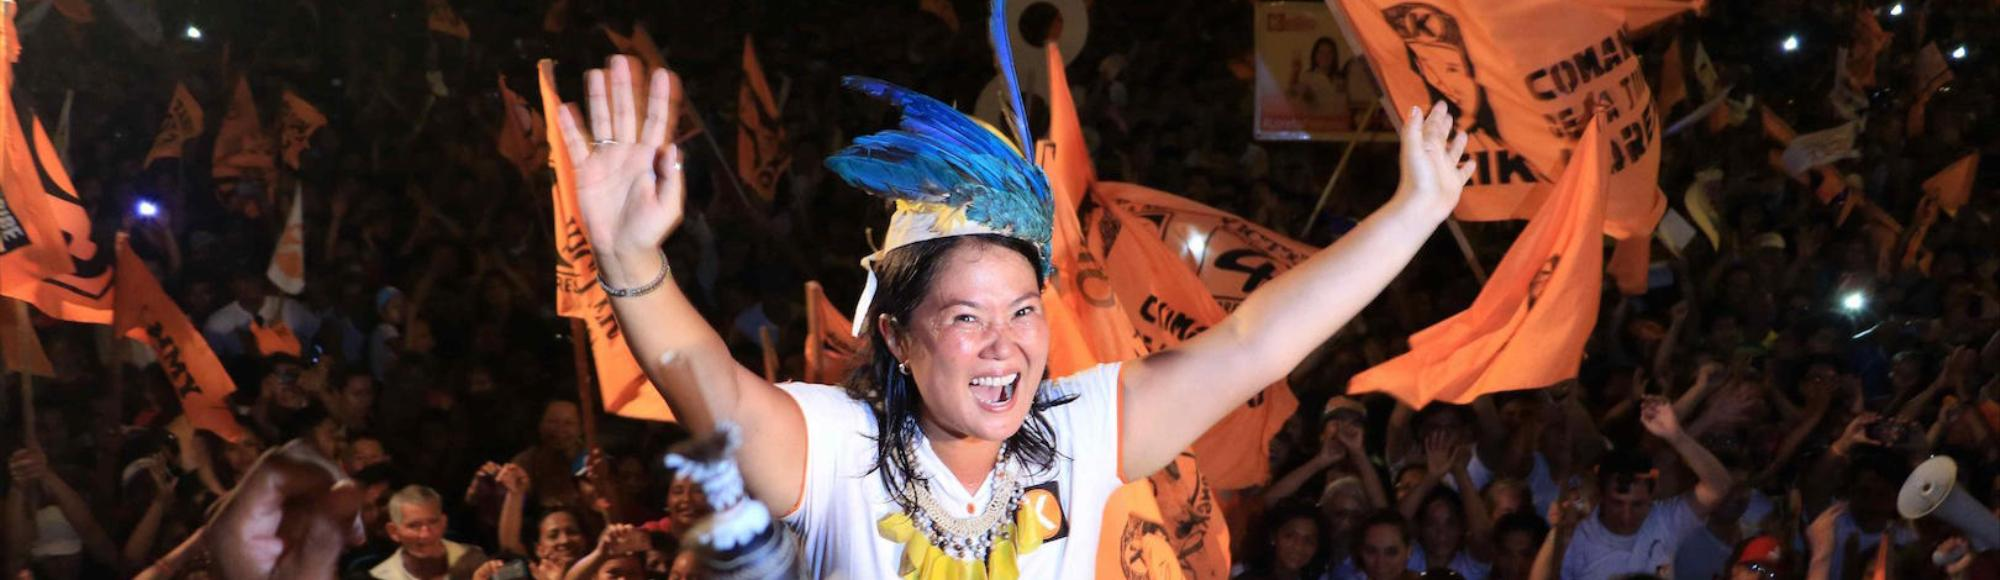 Keiko Fujimori's Chances of Becoming Peru's President Depend on Her Jailed Dad's Legacy